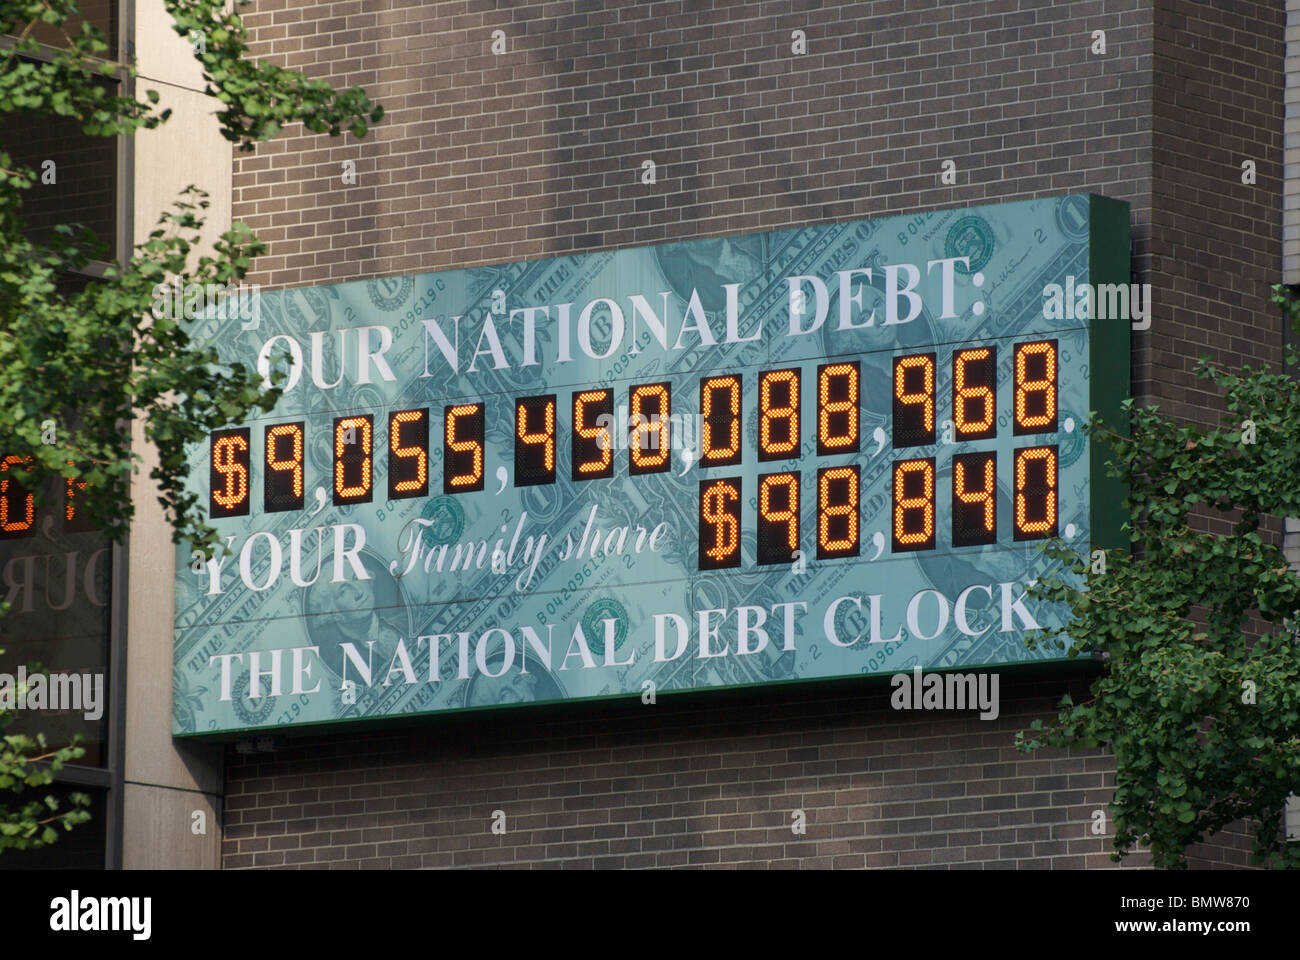 The National Debt Clock in New York City USA - Stock Image